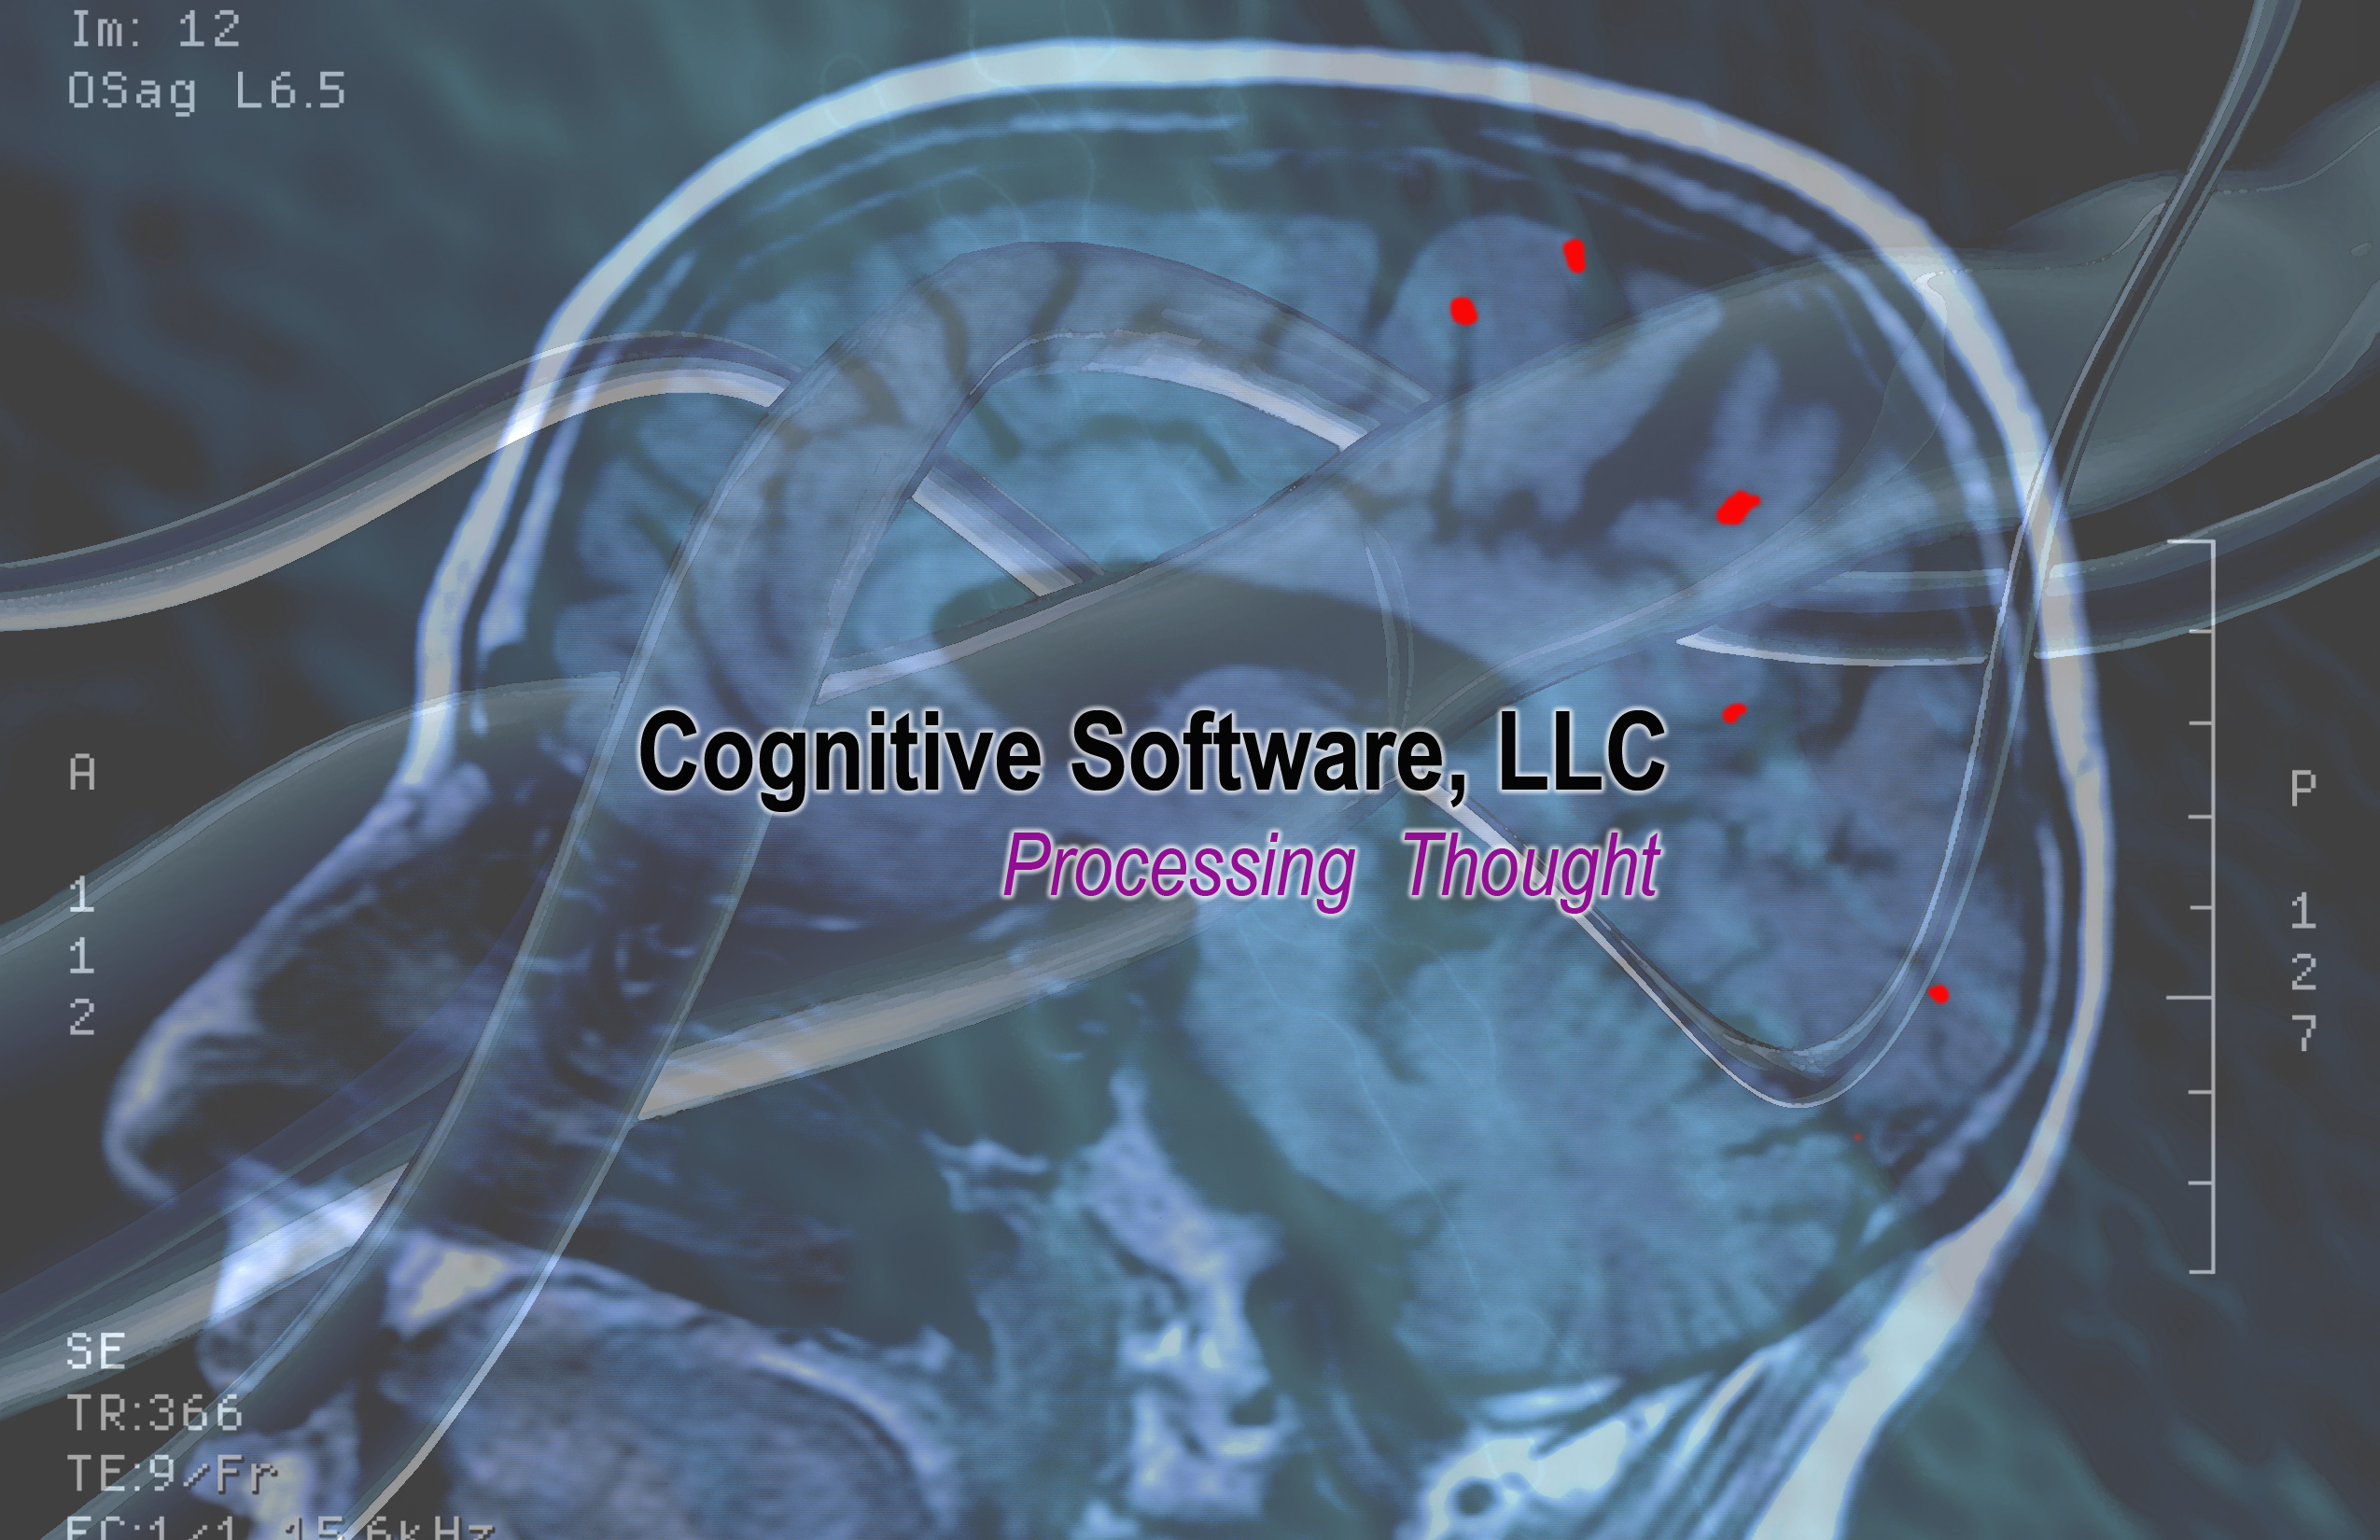 cognitive_software_logo.jpg